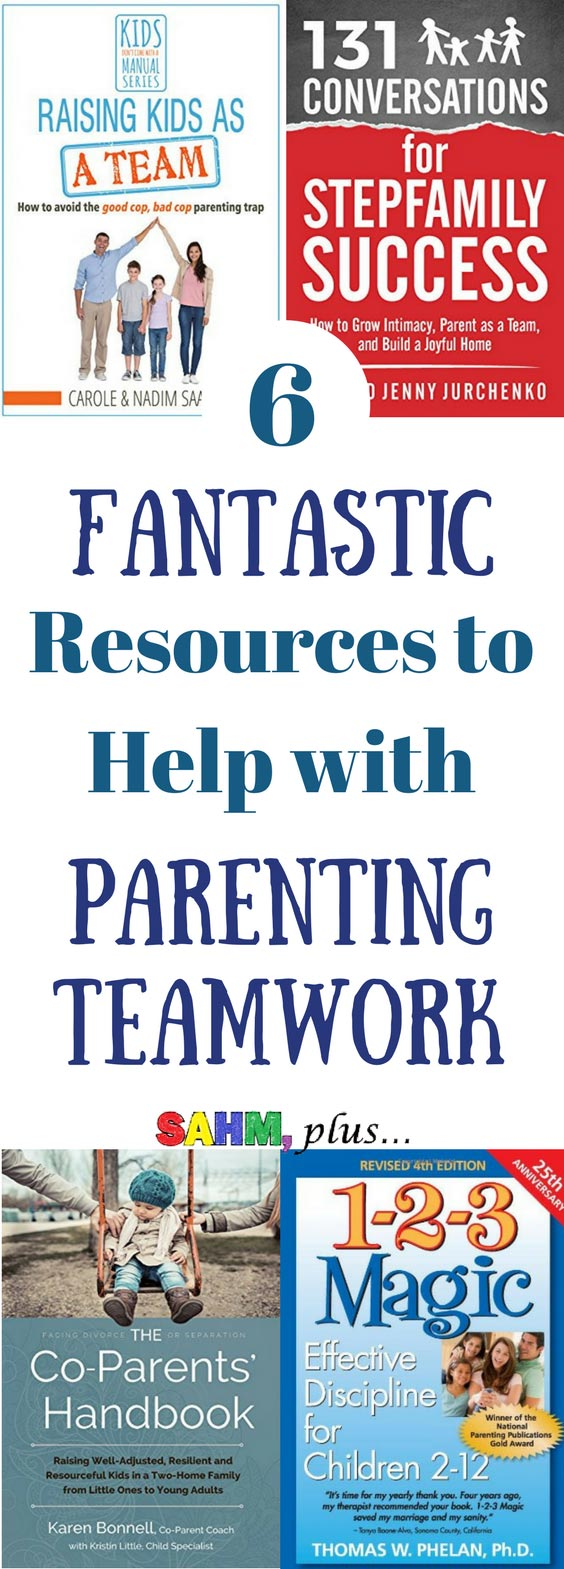 Struggling with parenting as a team? Check out these 6 amazing resources to help you parent as a team, regardless of your family dynamics